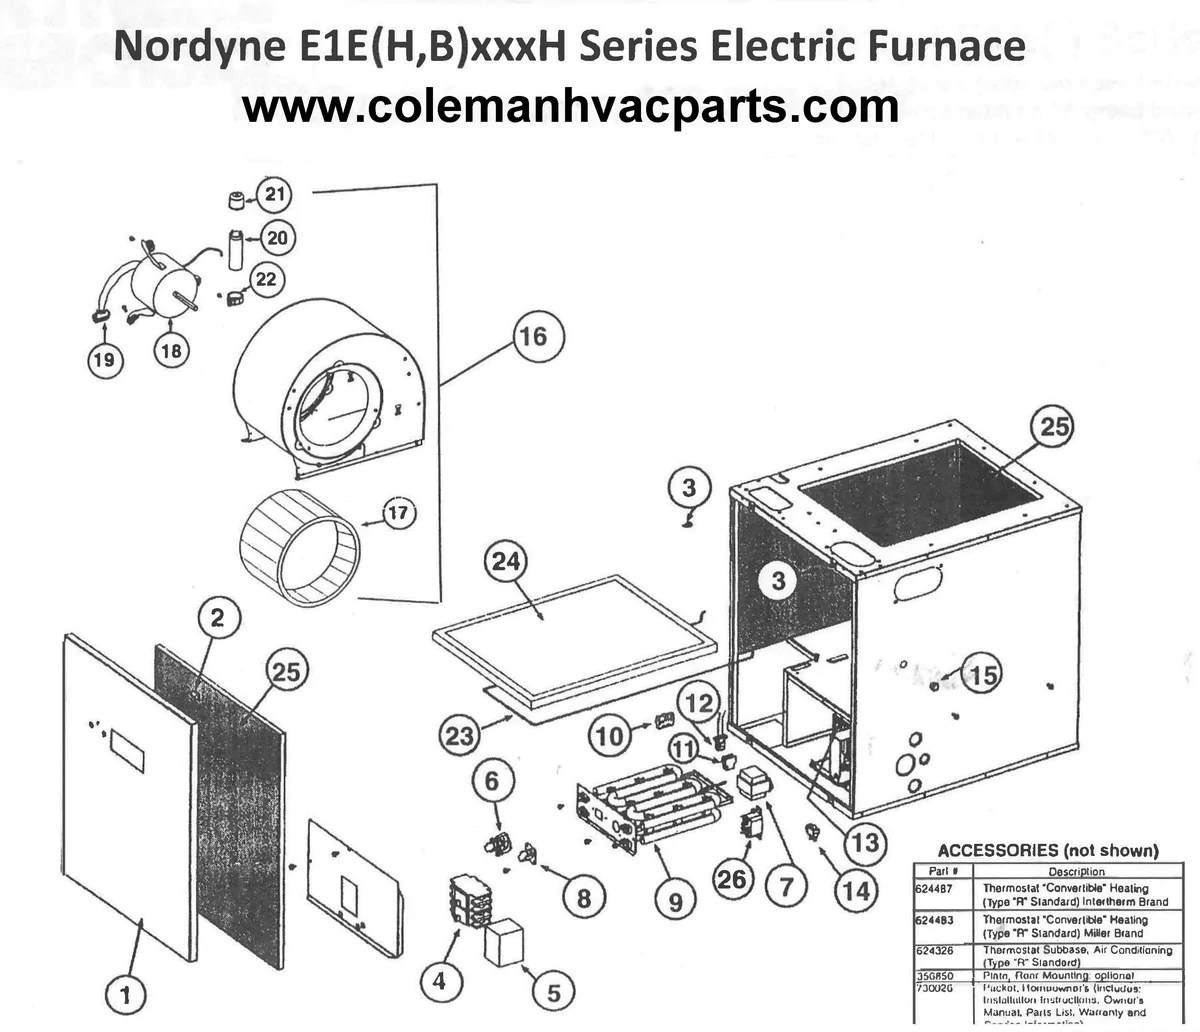 E1EH017H Nordyne Electric Furnace Parts – HVACpartstore